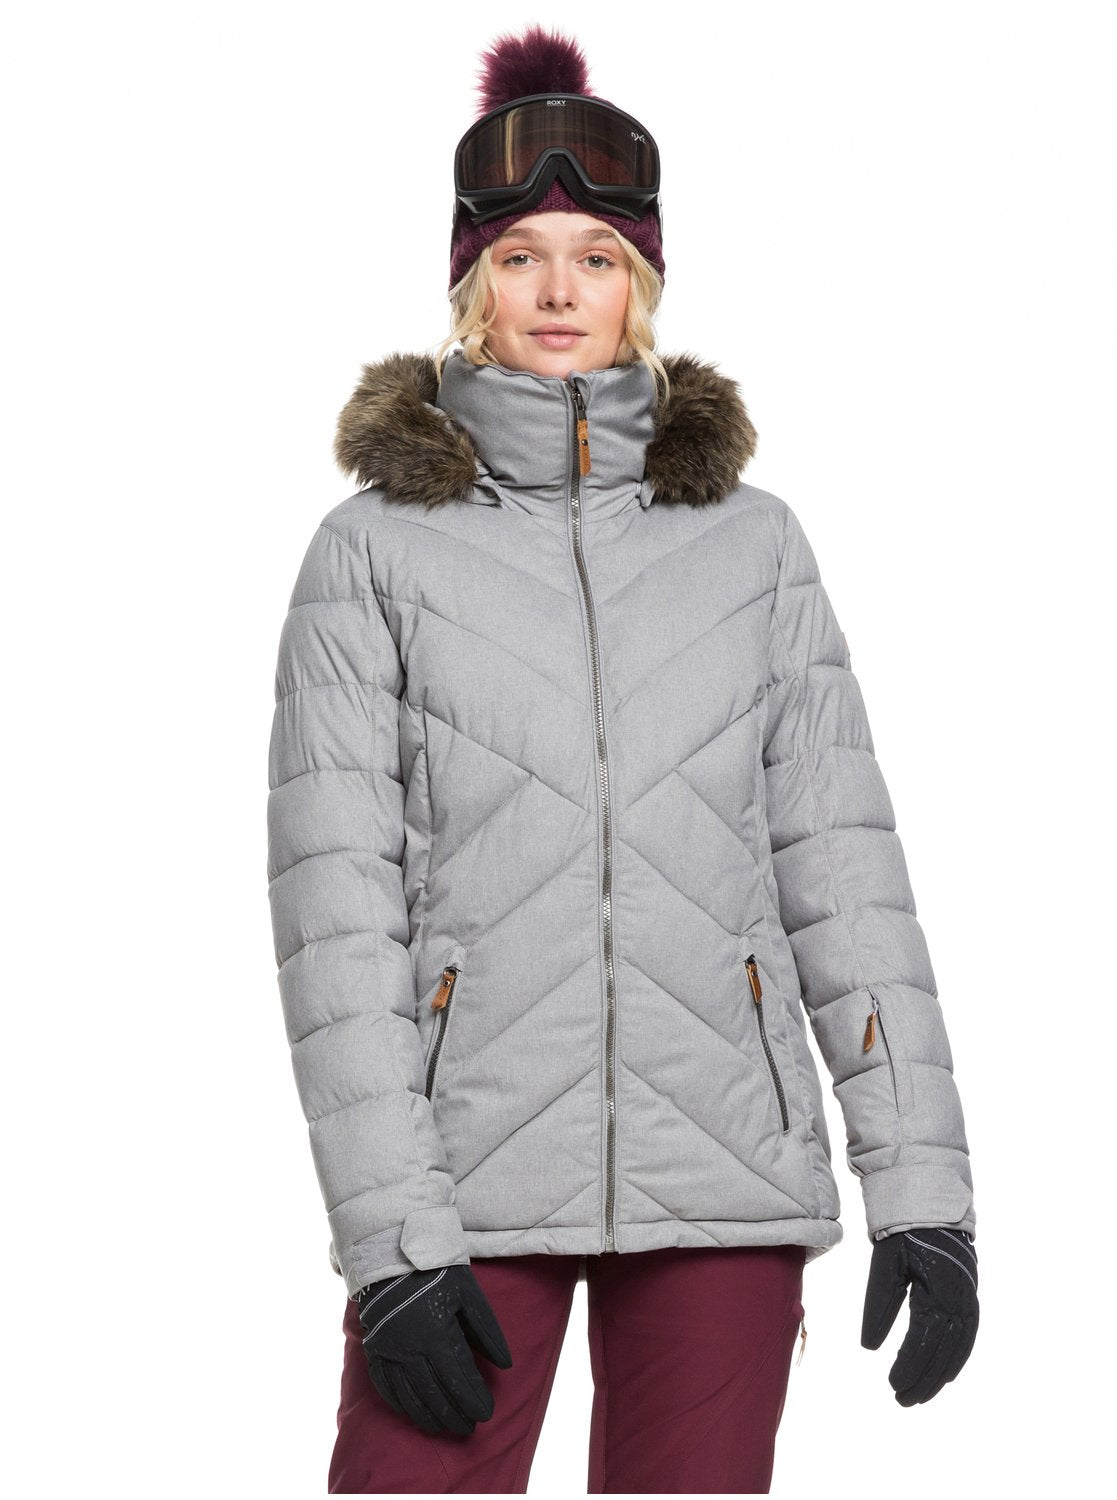 Roxy Quinn Snow Jacket - 88 Gear